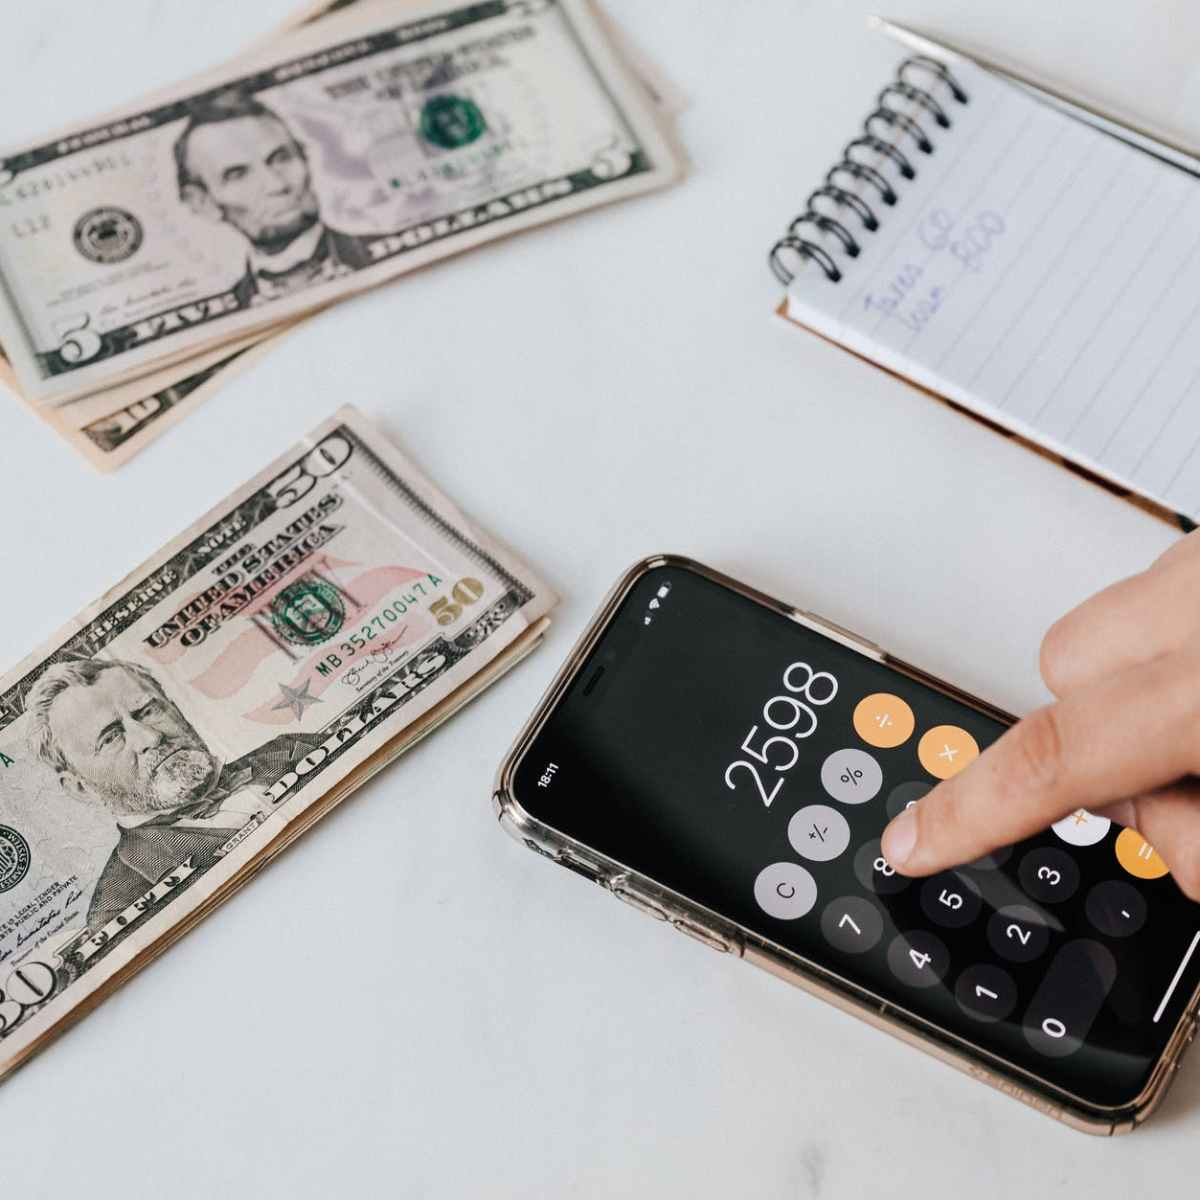 crop unrecognizable financier using calculator on smartphone near dollar banknotes